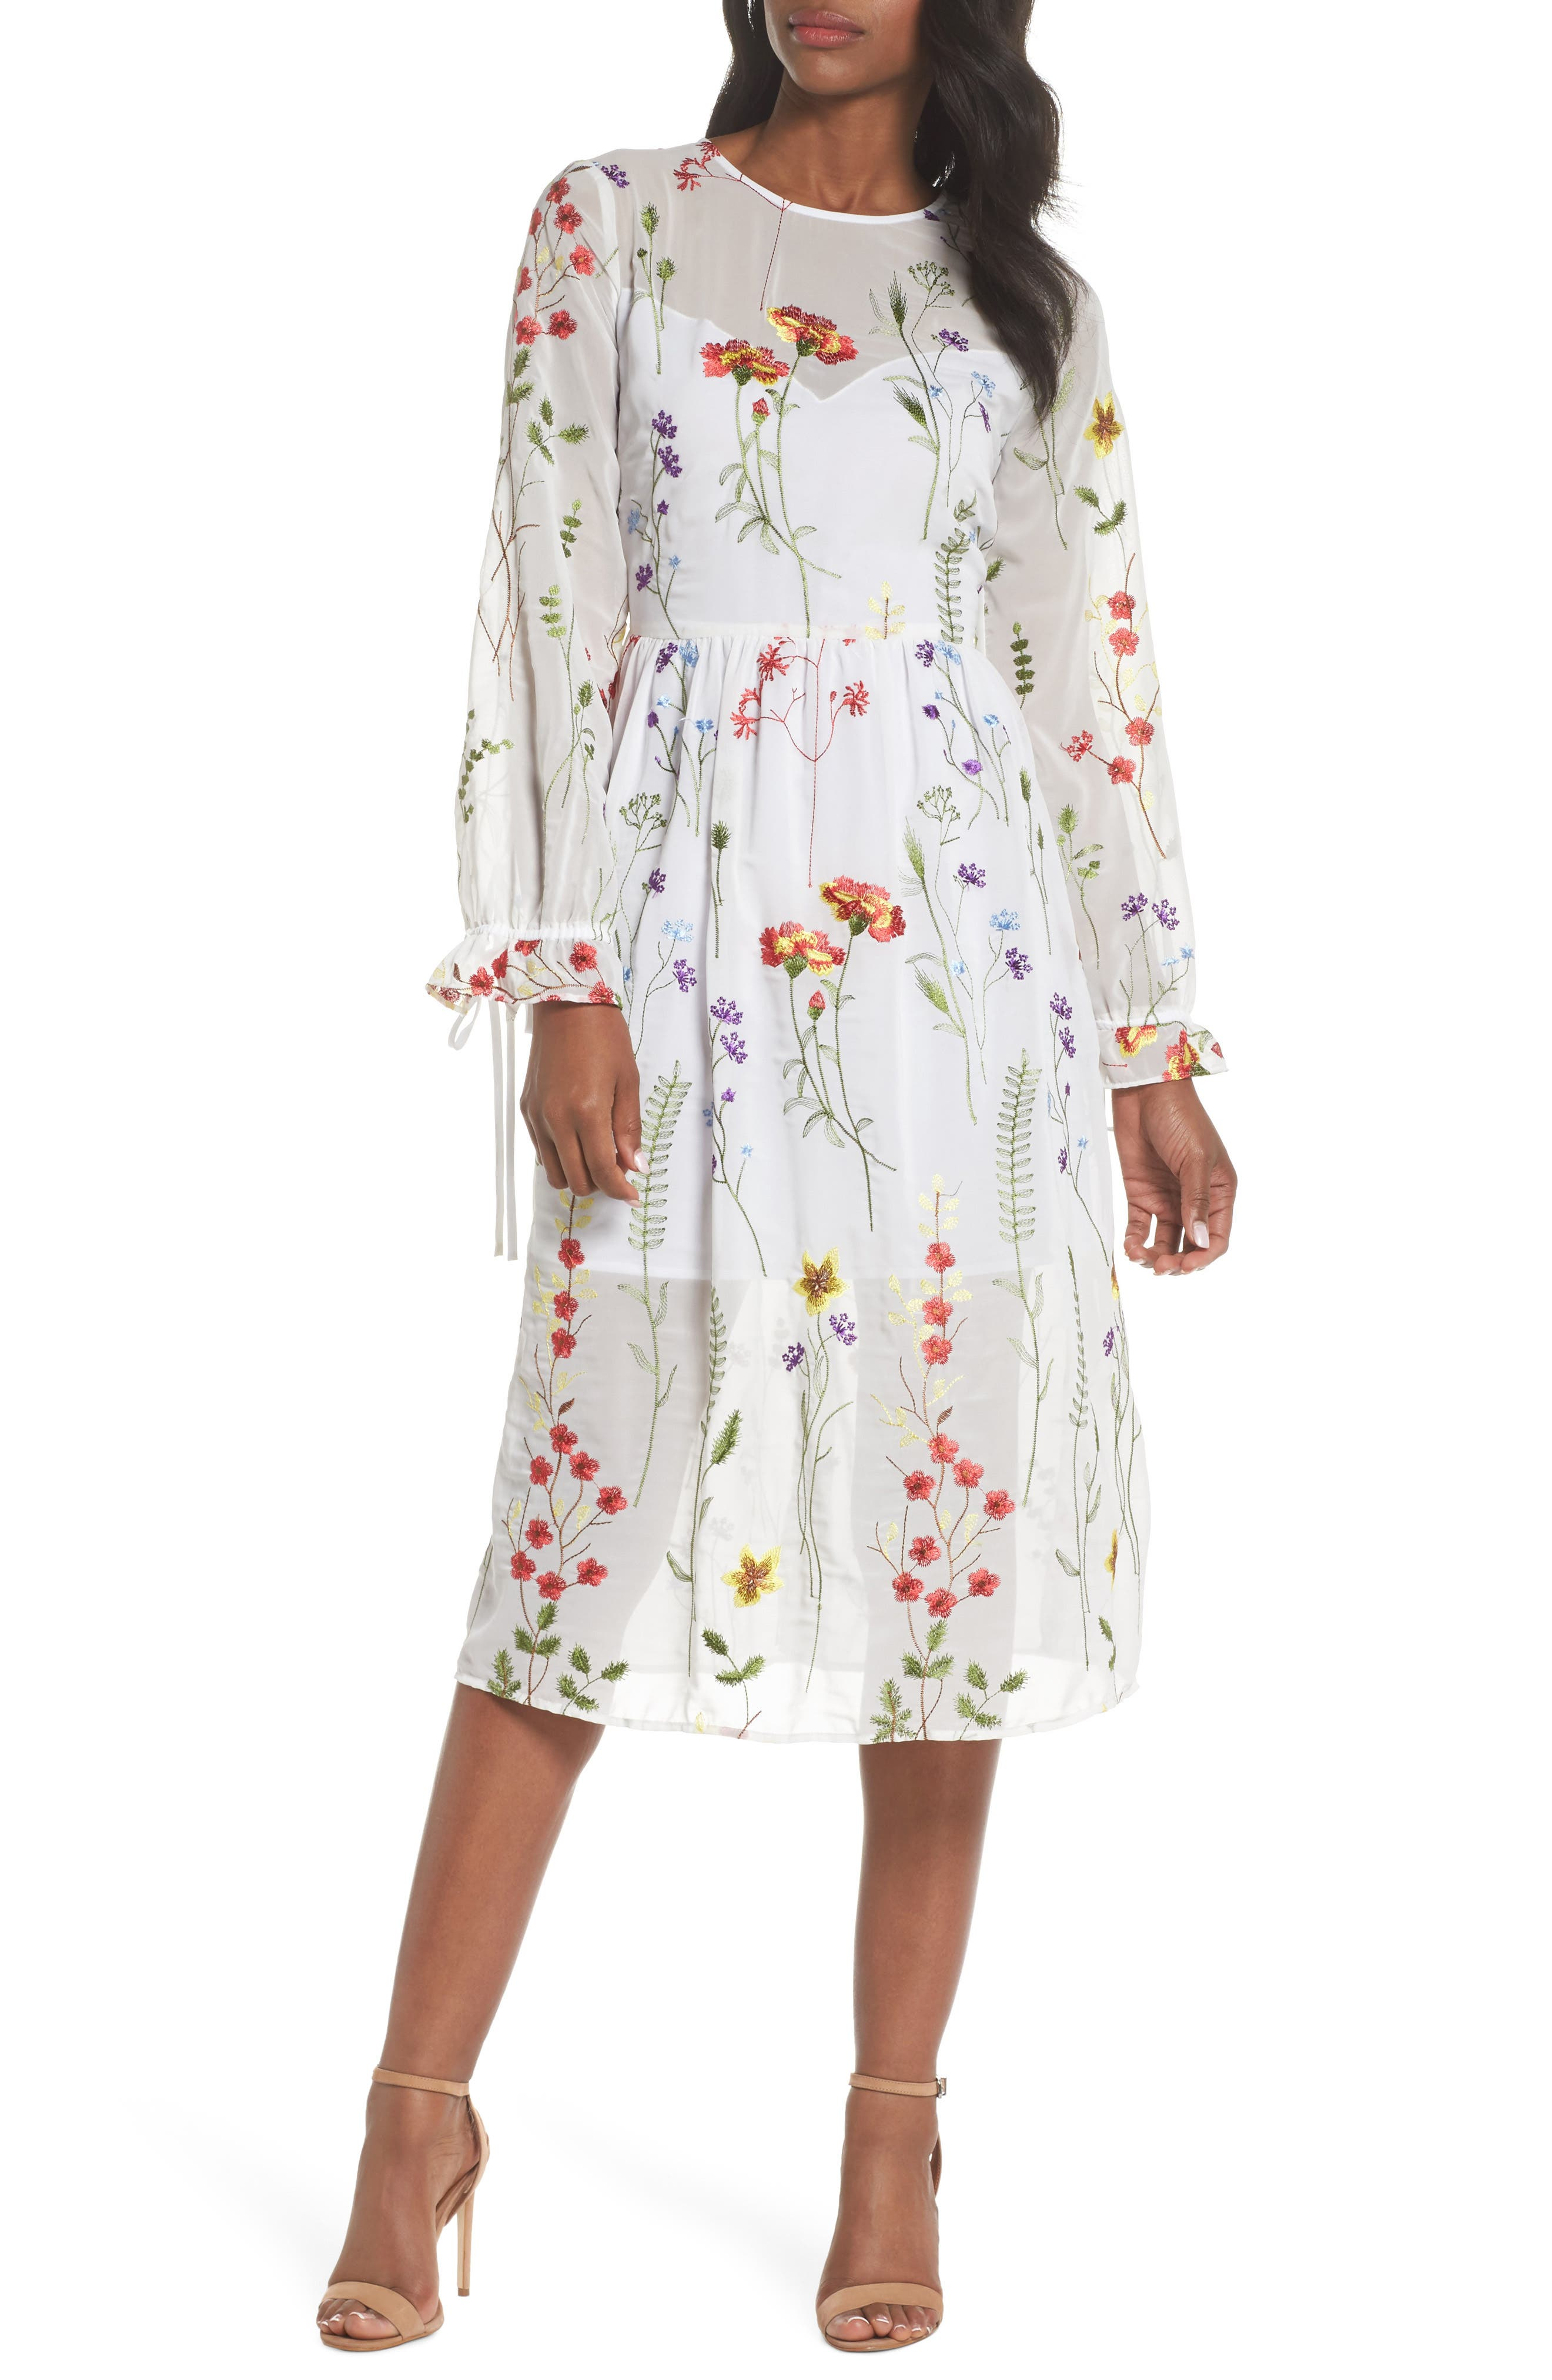 Sheer Embroidered Midi Dress,                         Main,                         color, White Embroidery Floral